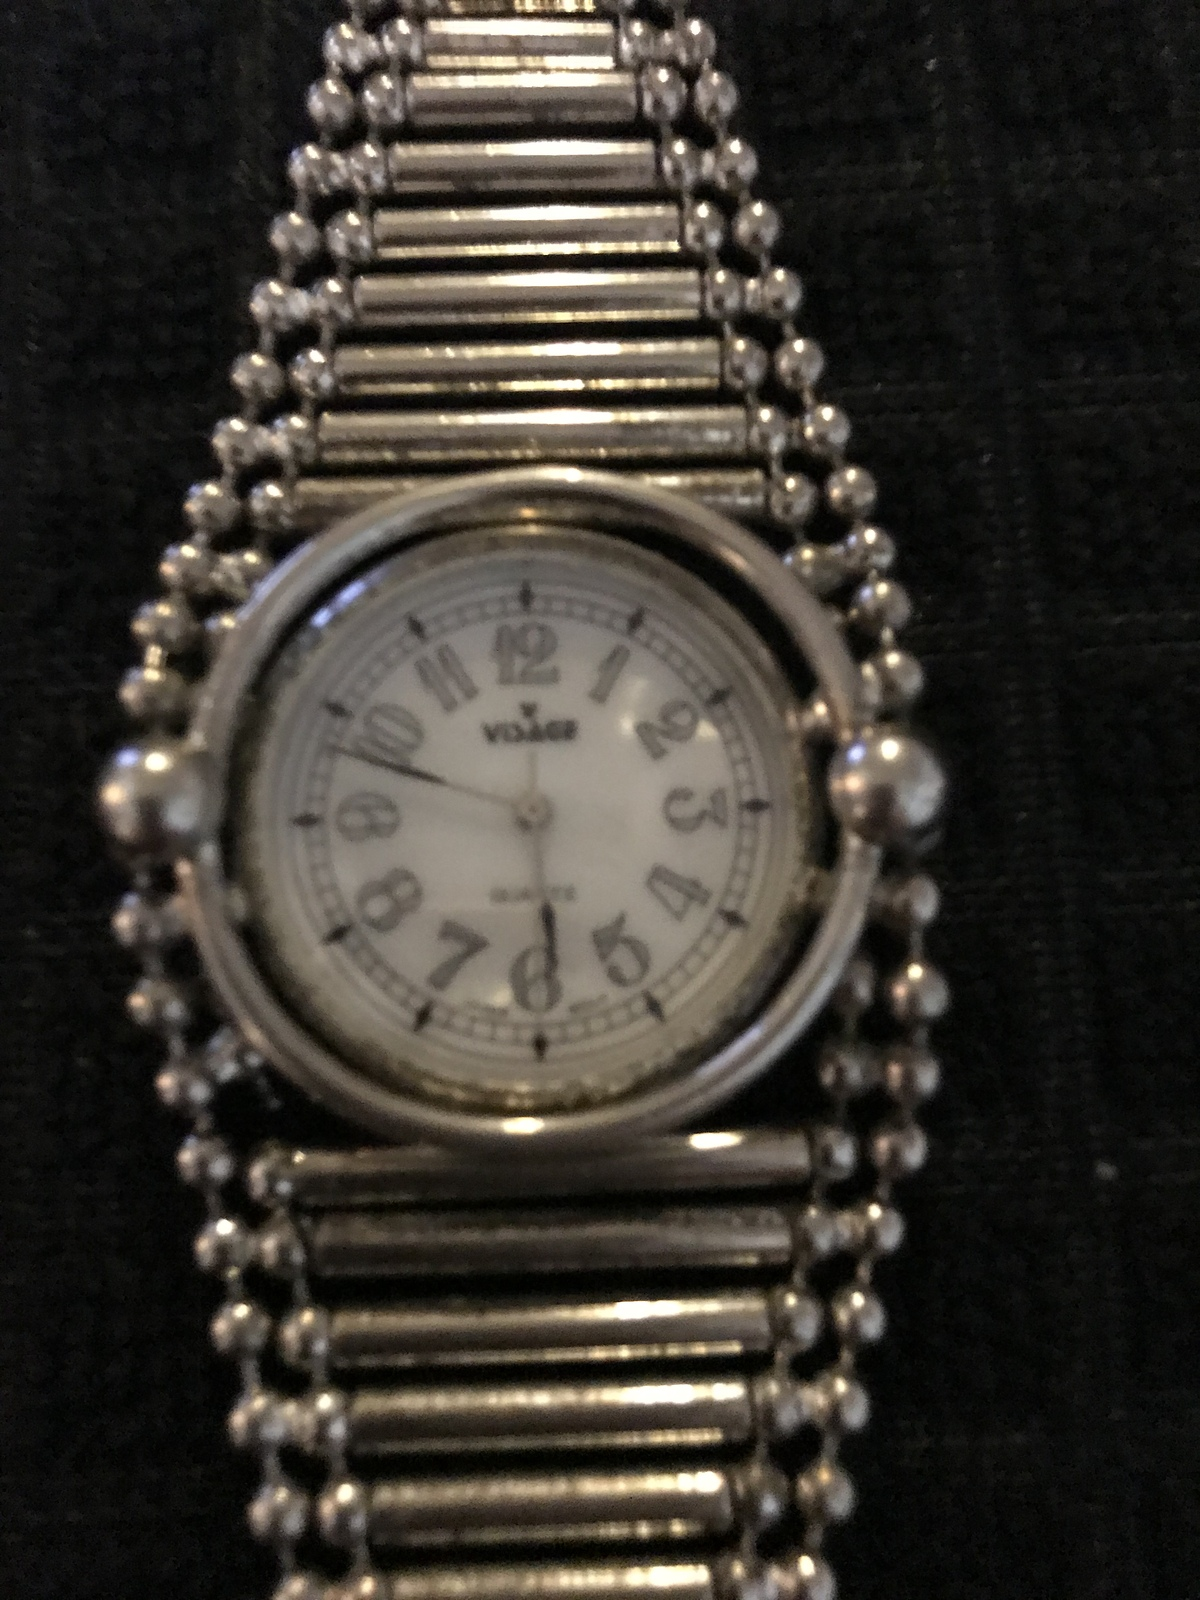 Primary image for Vintage 1980s Visage Women's Wrist Watch